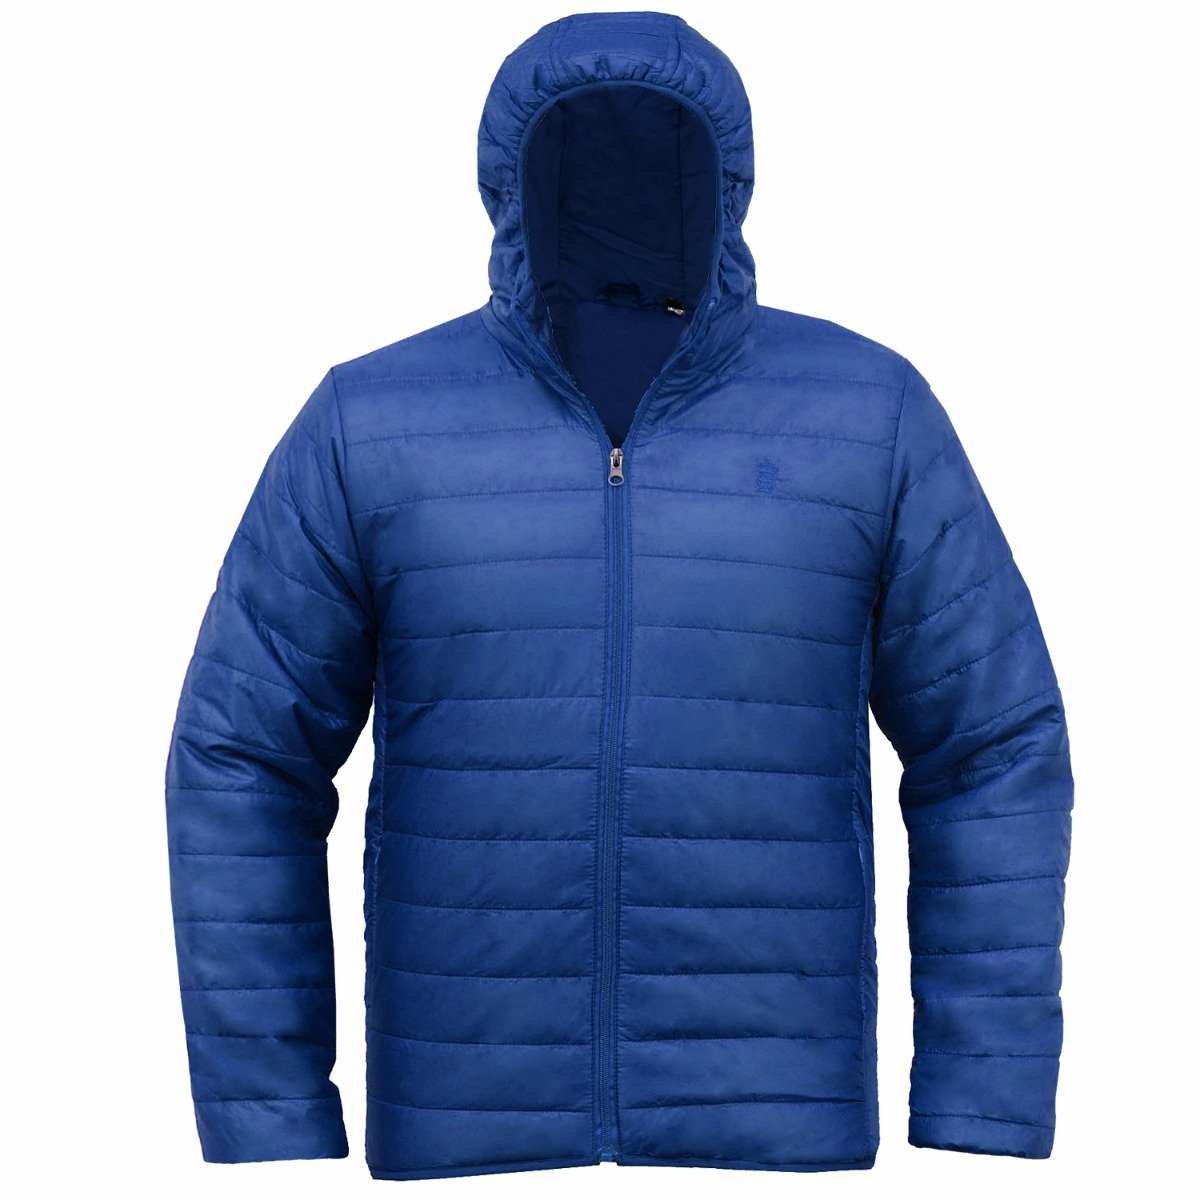 476aae999 Soulstar Men's Hooded Quilted Padded Lightweight Jacket Puffa Coat Size